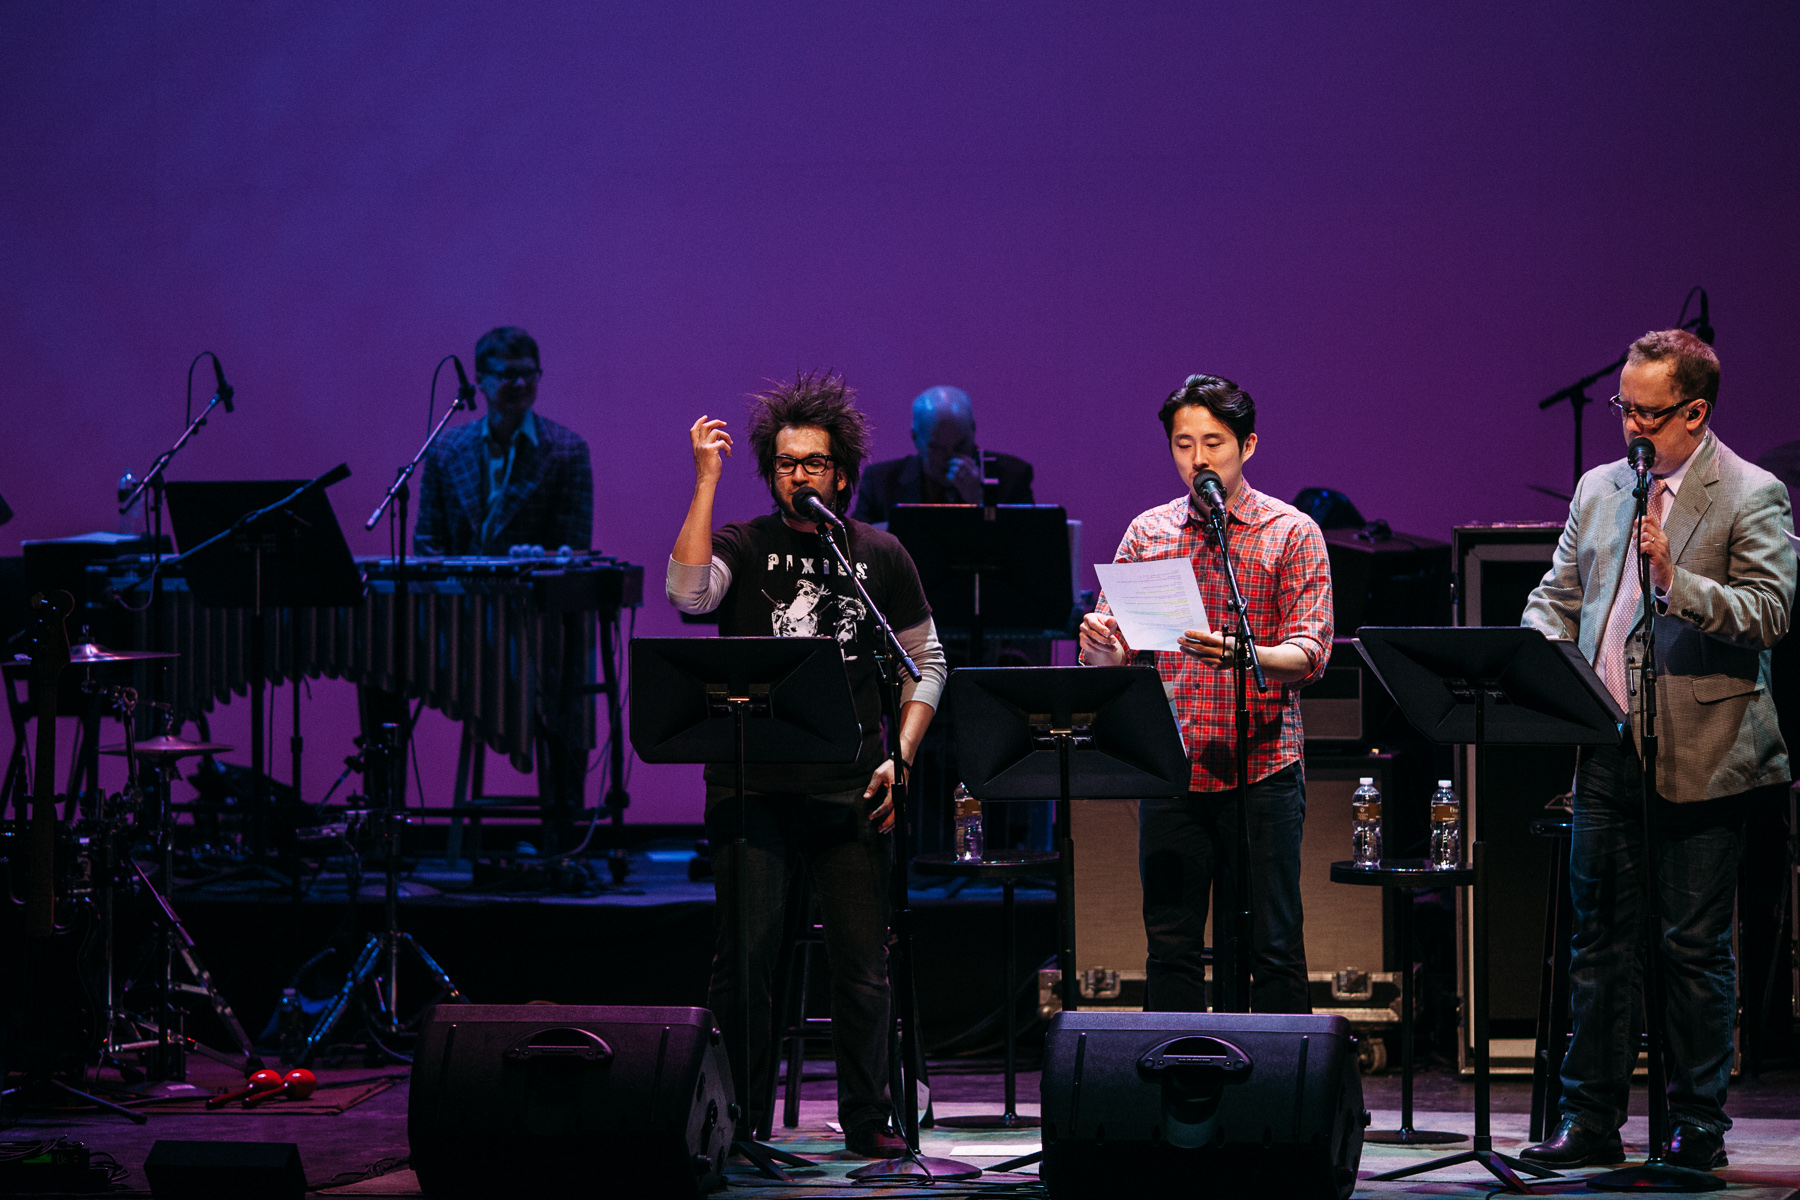 Motion_City_Soundtrack_And_Steven_Yeun_Perform_On_Wits_053.JPG